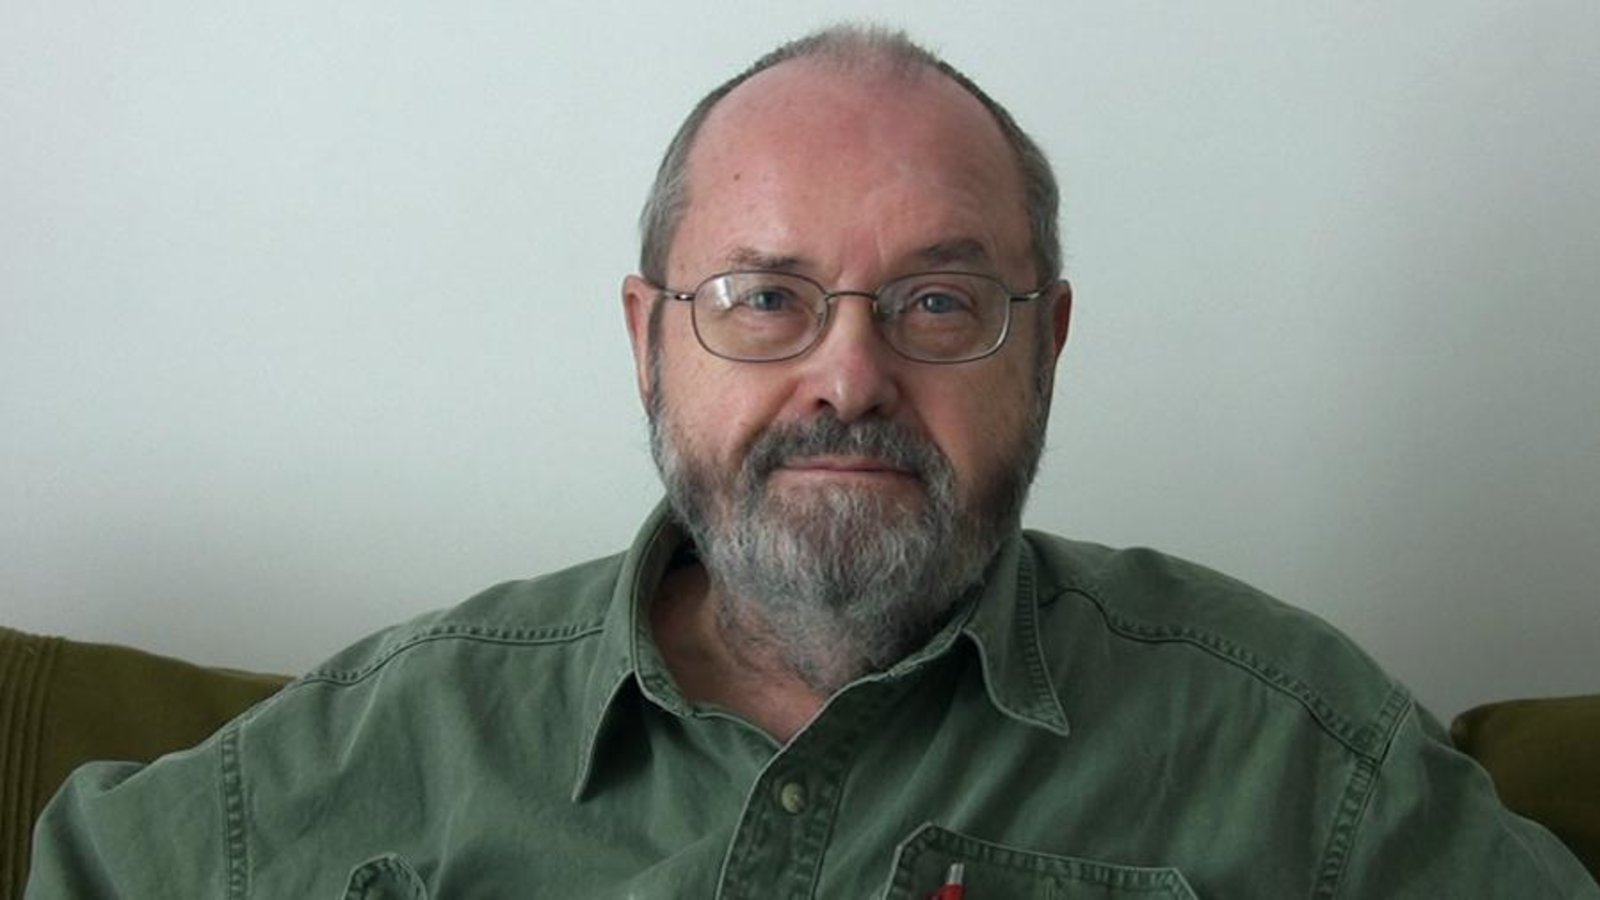 Phill Niblock - A Conversation with Minimalist Composer and Intermedia Artist